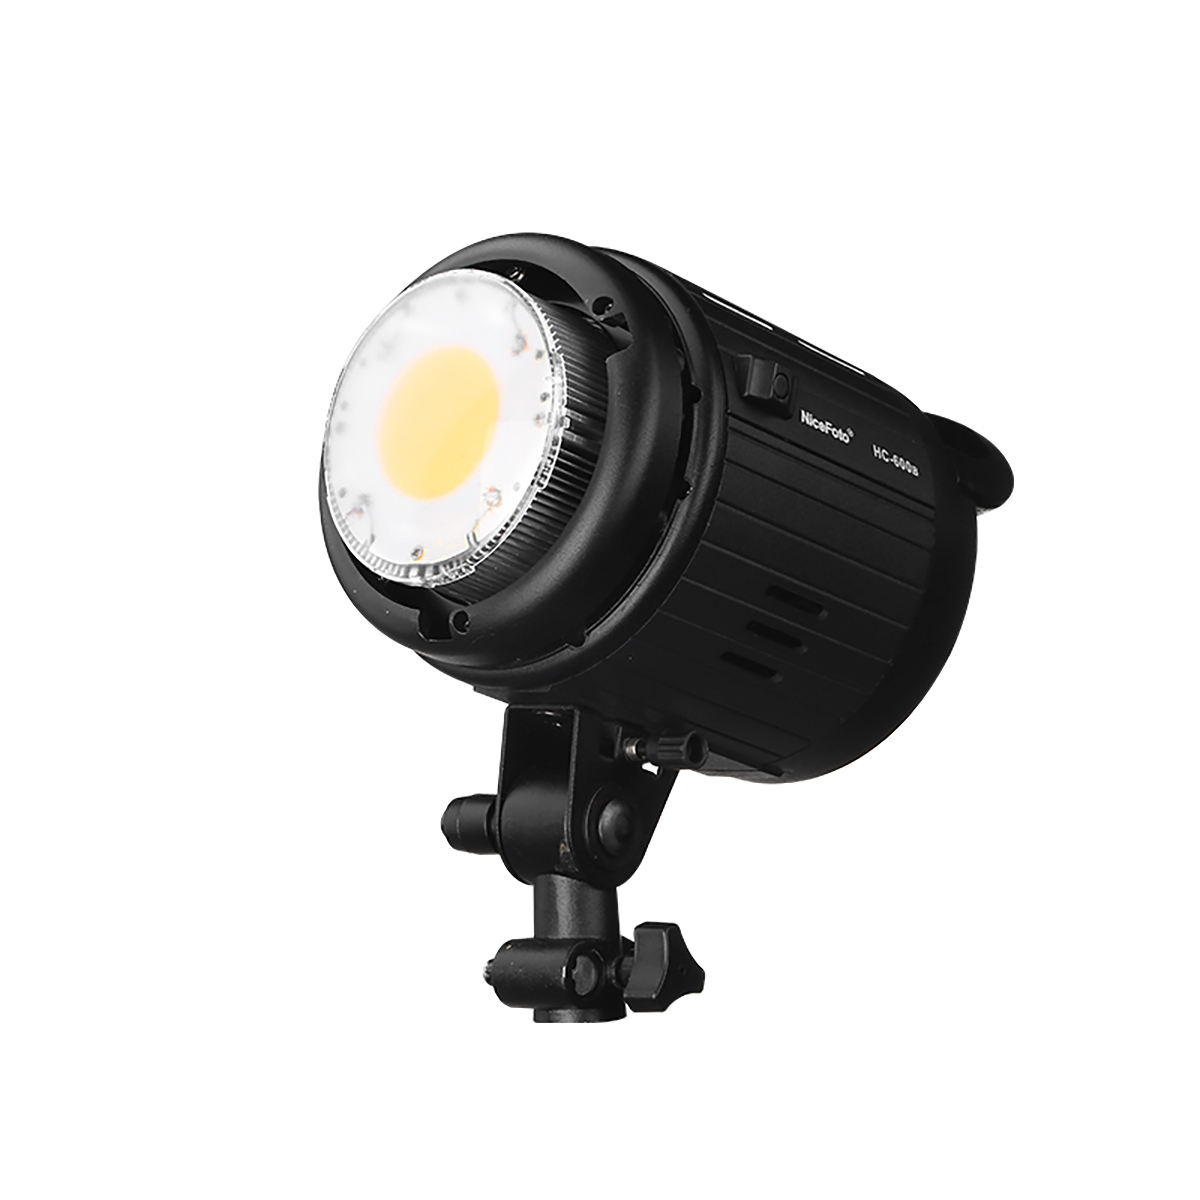 HC-1000B  NiceFoto 100W LED video light Studio lighting with Bowens mount continuous light photo light photographic equipement